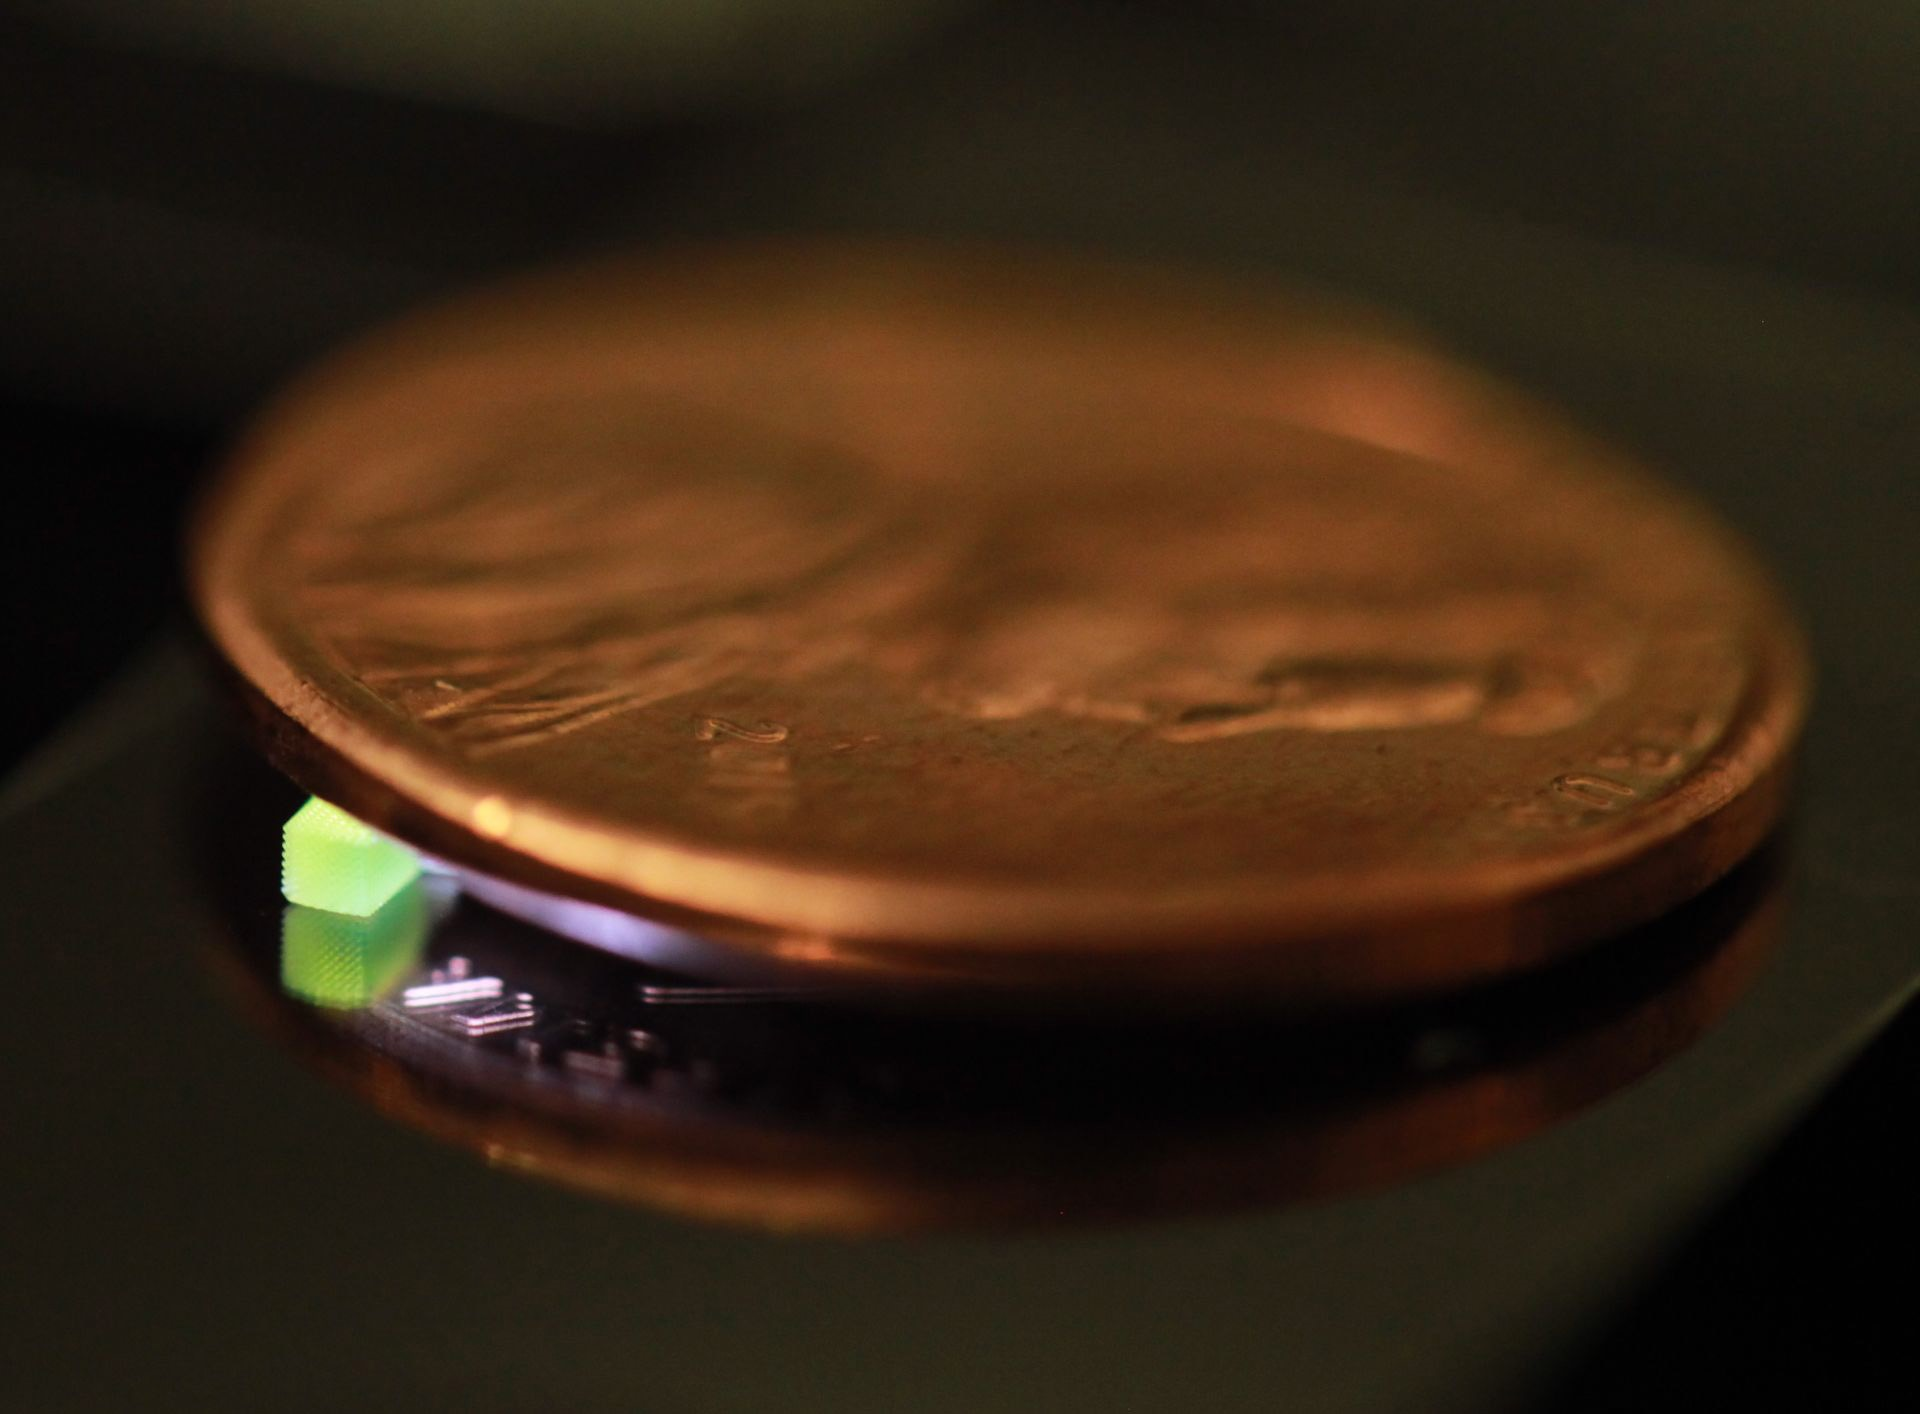 A millimeter-scale structure with submicron features is supported on a U.S. penny on top of a reflective surface